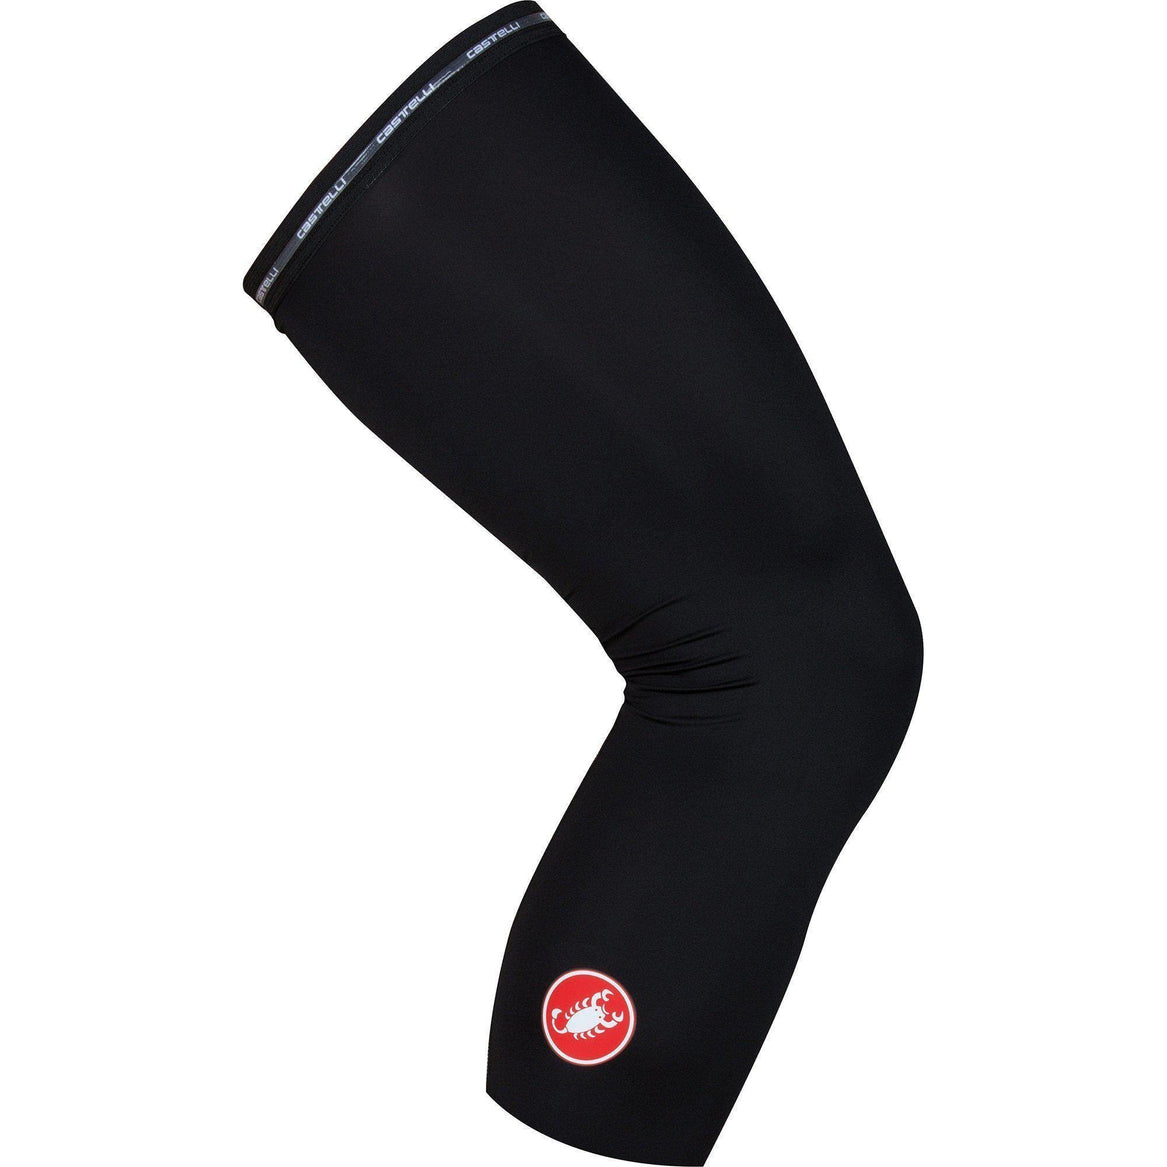 Warmers - Castelli UPF 50+ Knee Sleeves